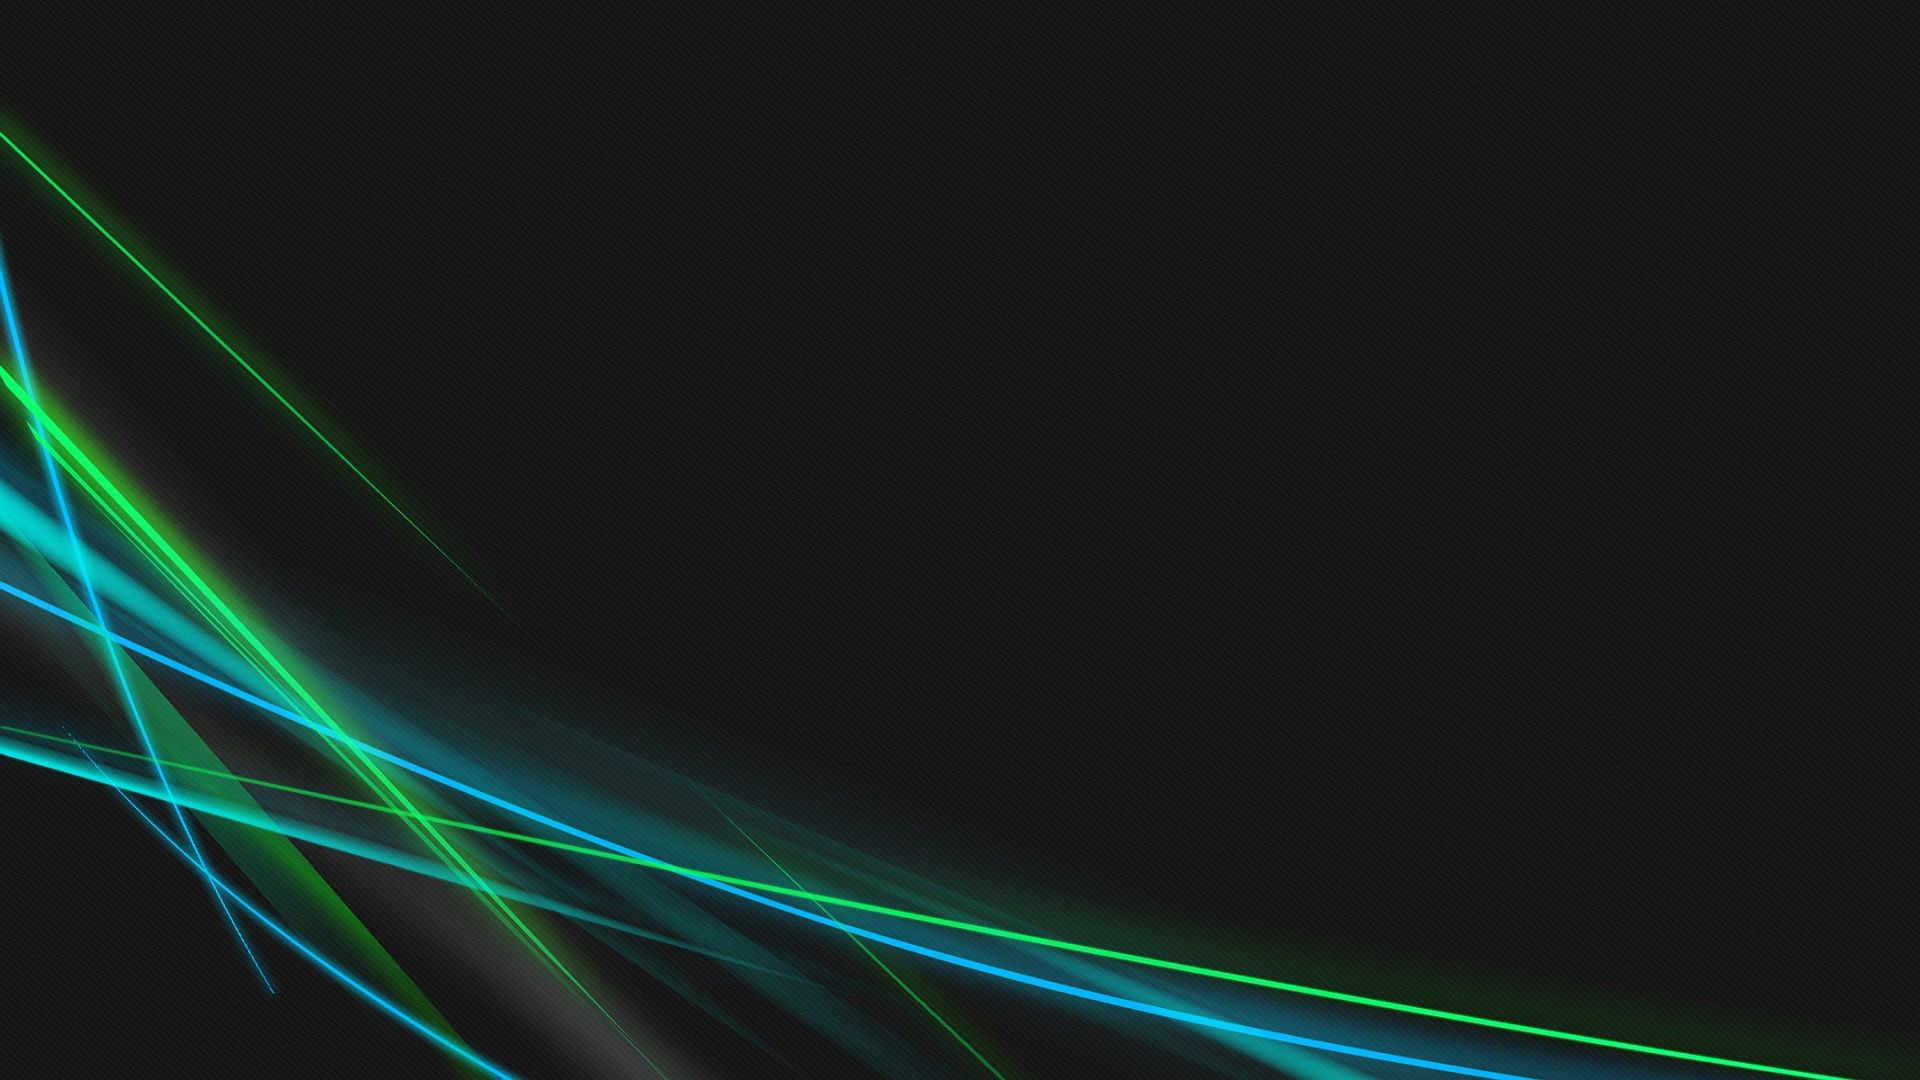 Free Download Blue And Green Neon Curves Wallpaper 578863